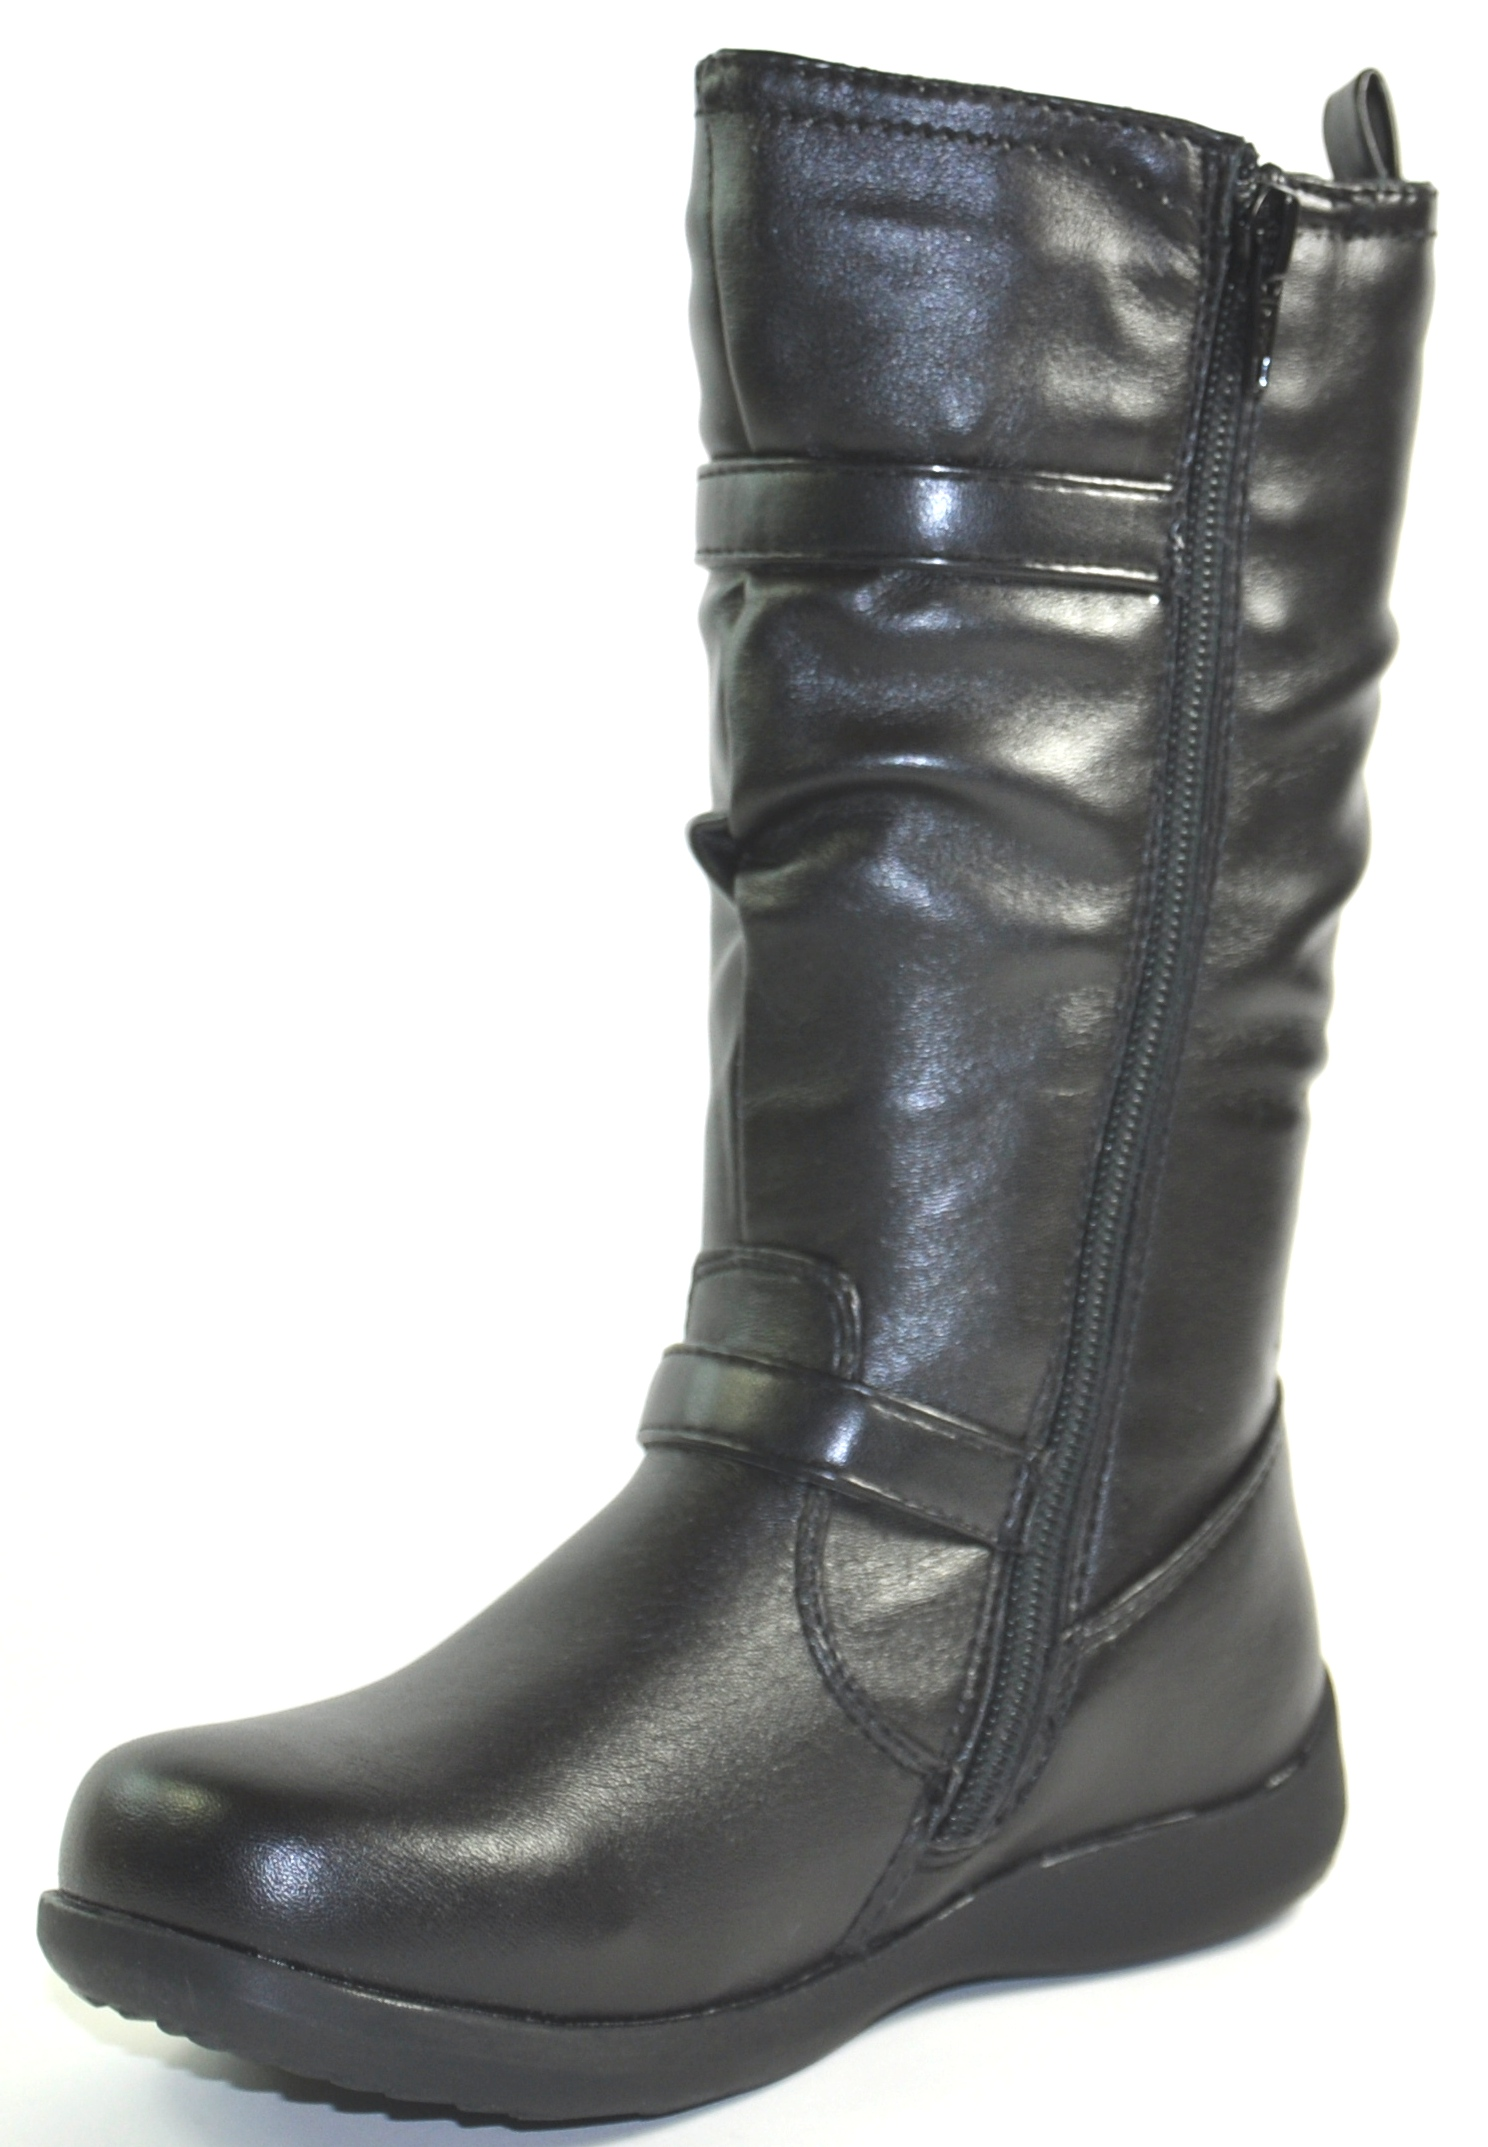 new black faux leather zip up calf length boots